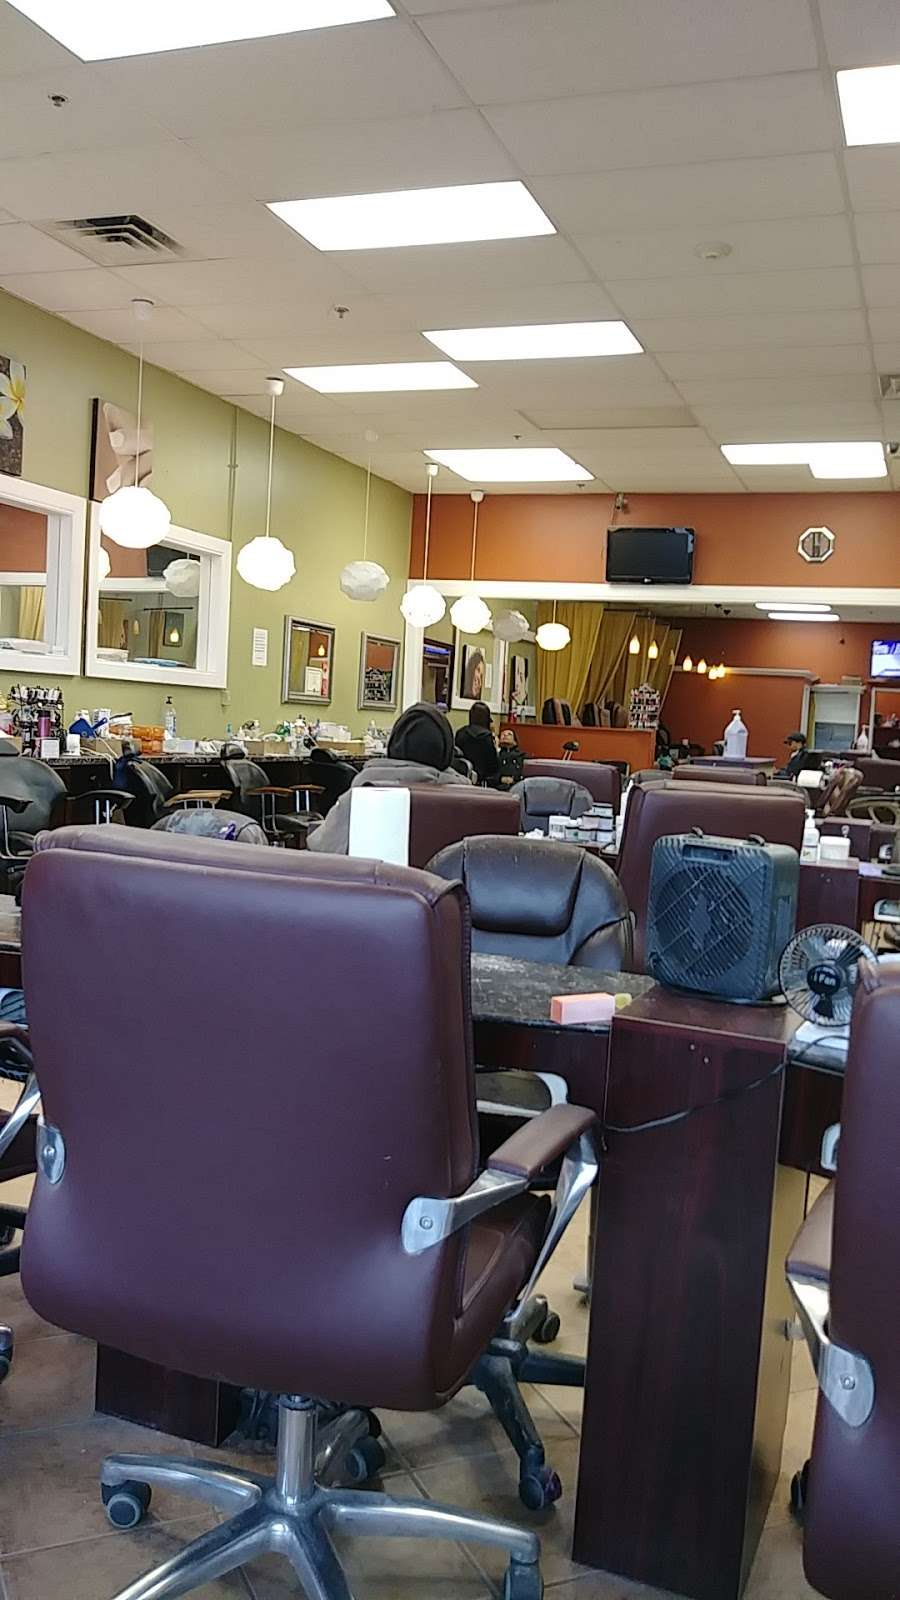 Happy Nails Brows & Lashes Bar - hair care  | Photo 1 of 10 | Address: 1627 E 95th St, Chicago, IL 60617, USA | Phone: (773) 221-3056